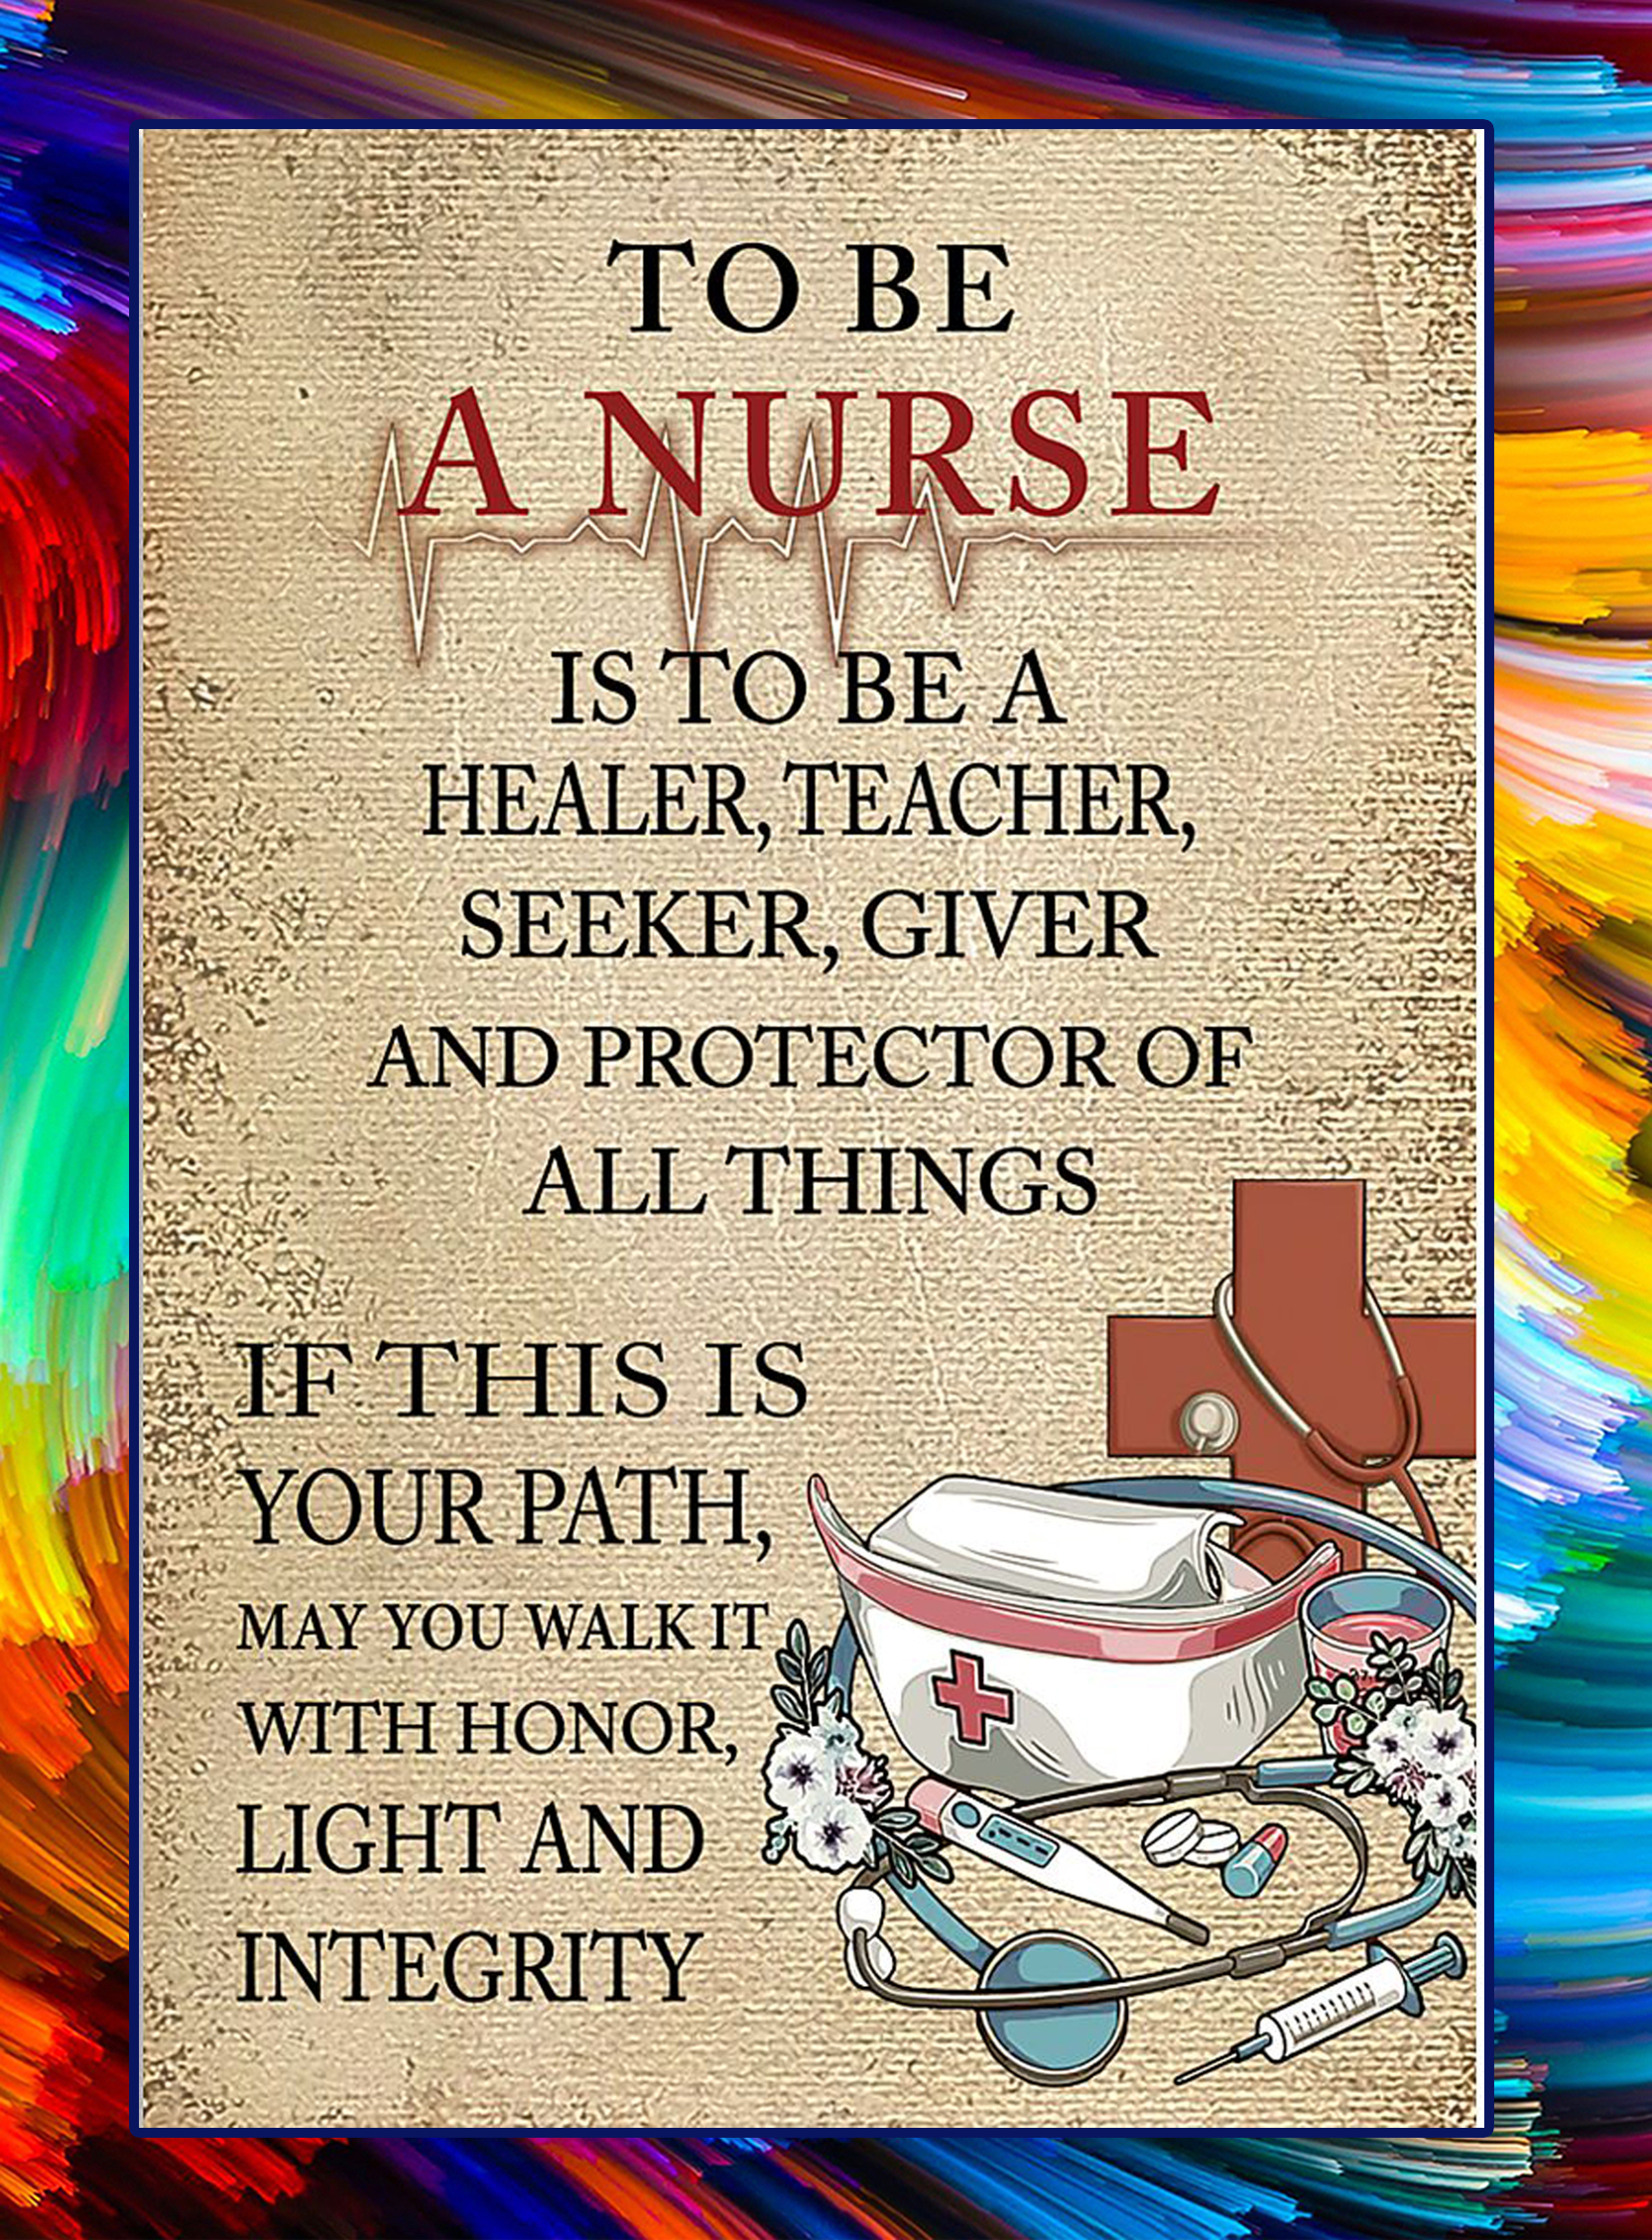 To be a nurse is to be a healer teacher poster - A3